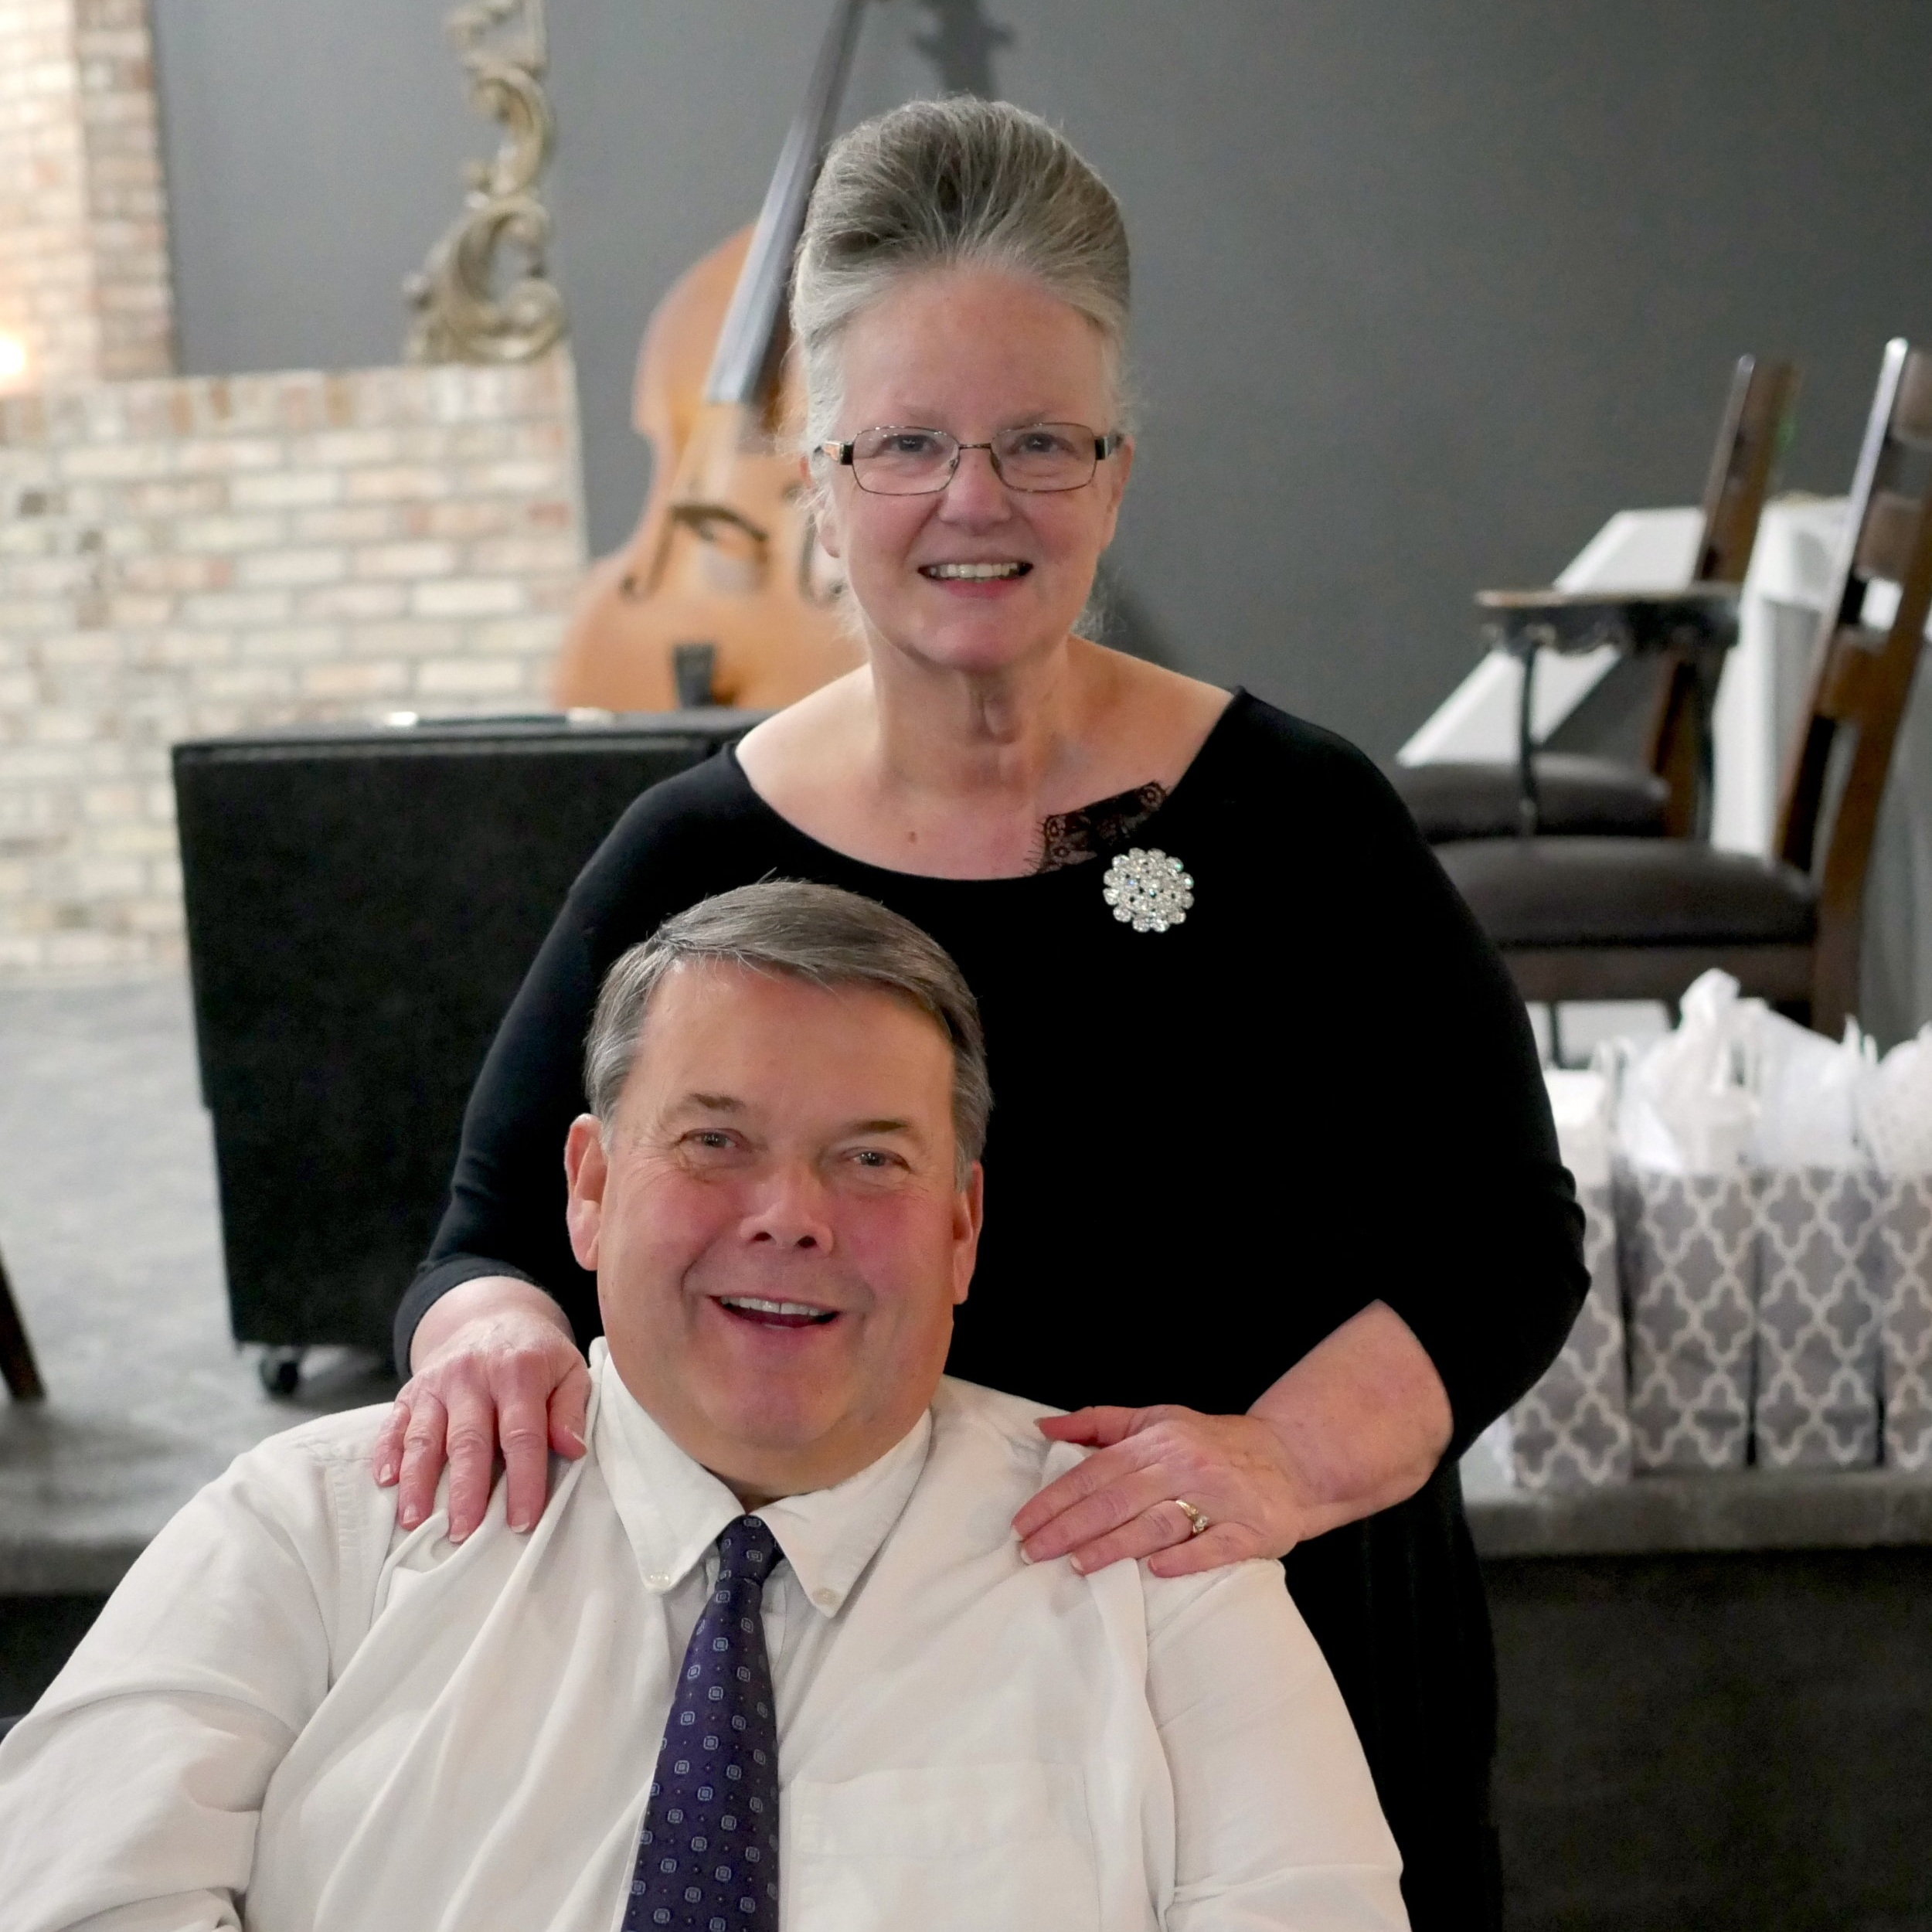 Senior Pastor: Rev. Bruce and First Lady Brenda Leaman -